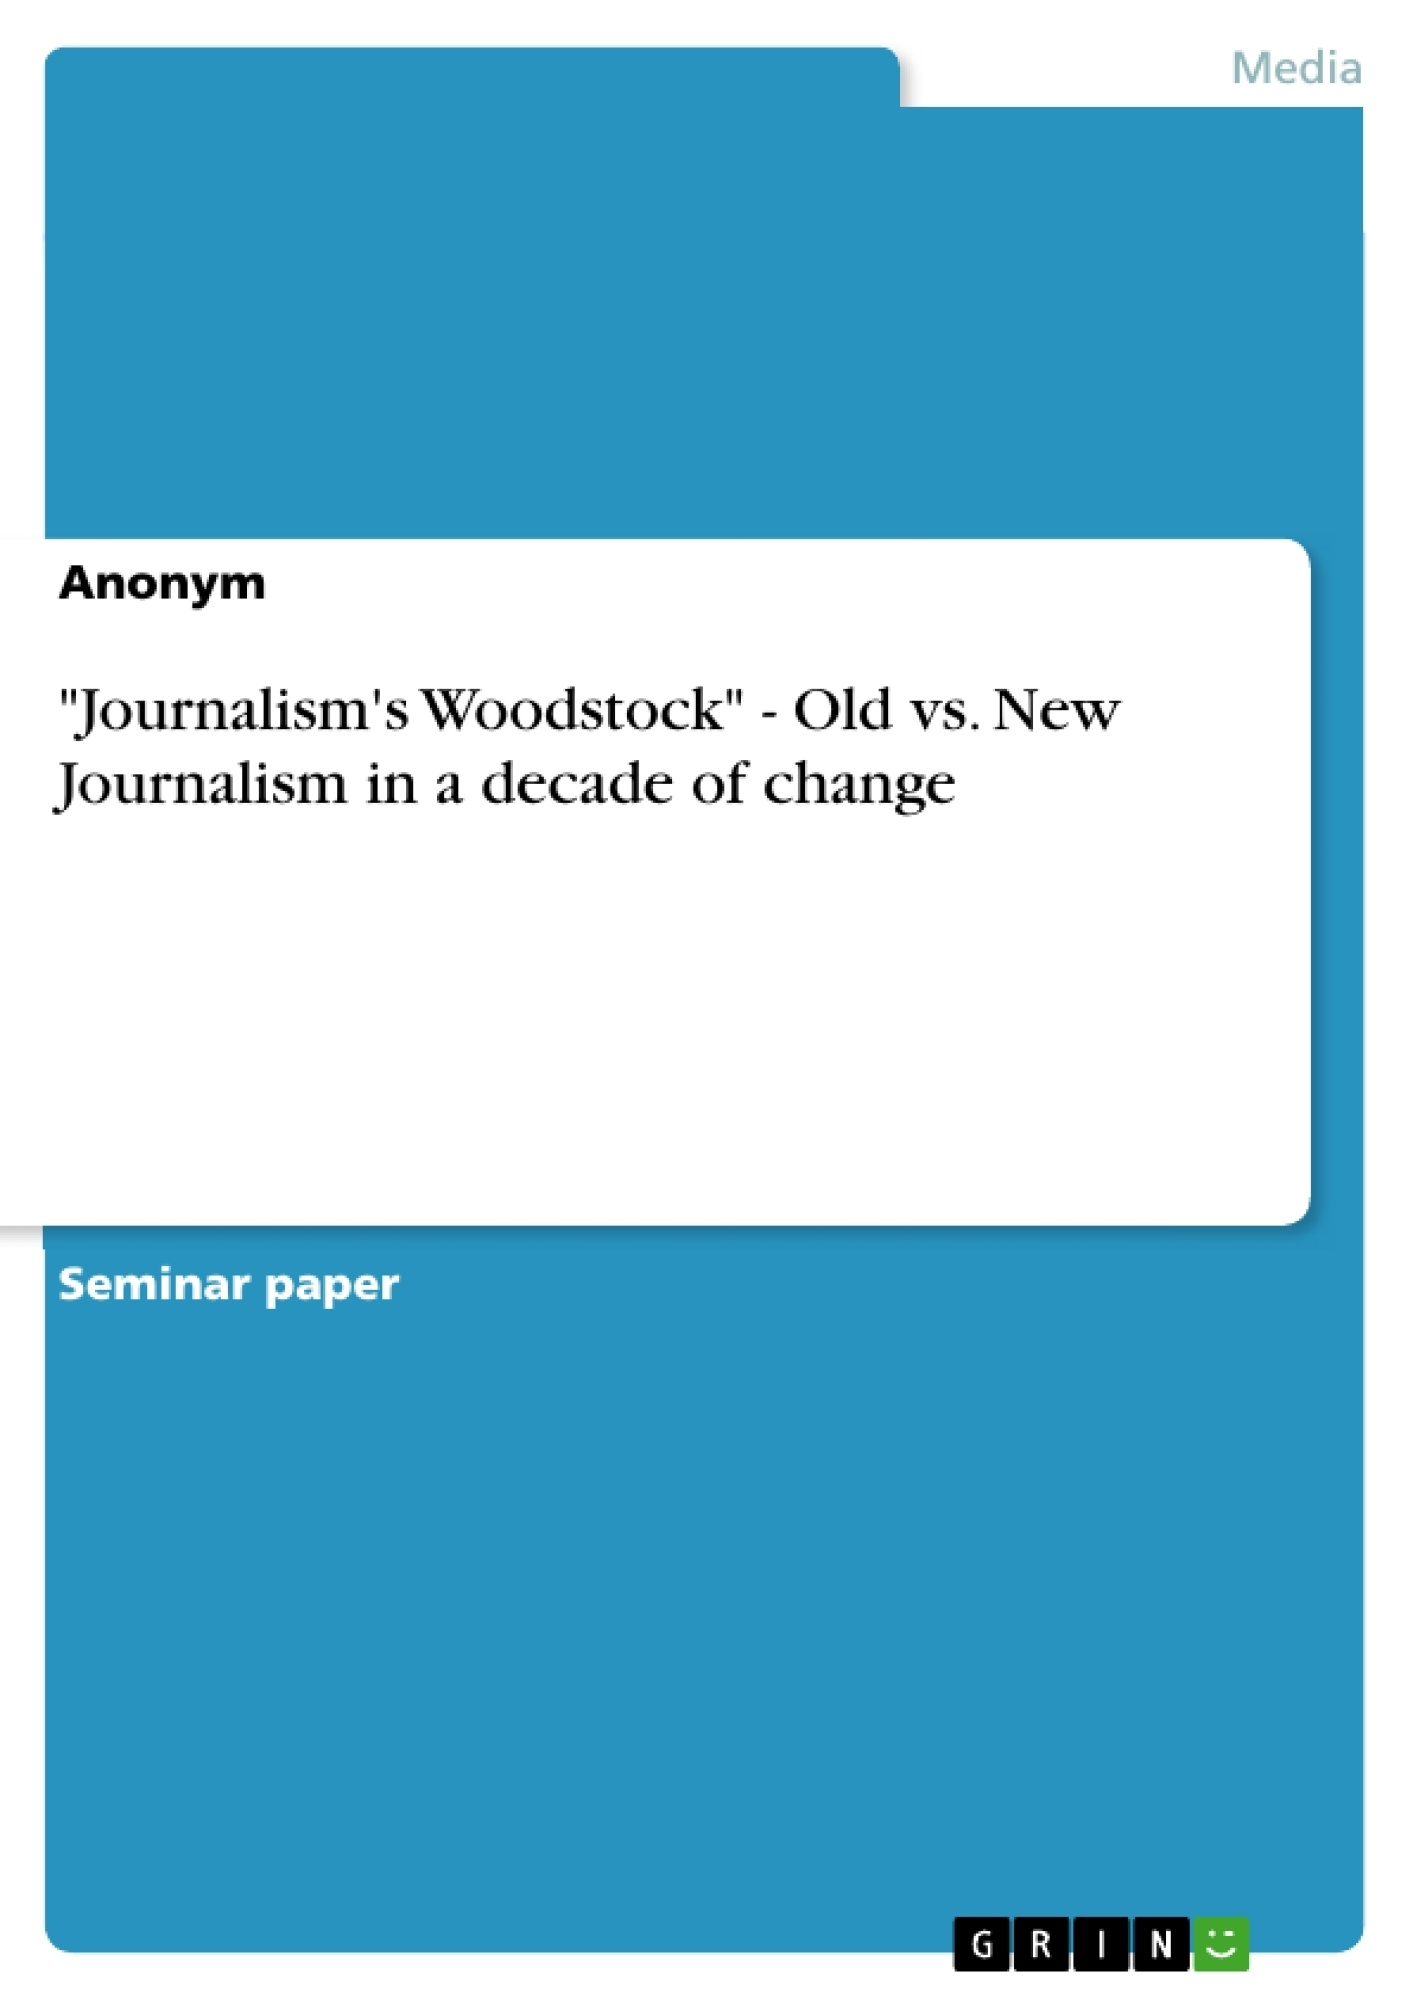 """Title: """"Journalism's Woodstock"""" - Old vs. New Journalism in a decade of change"""